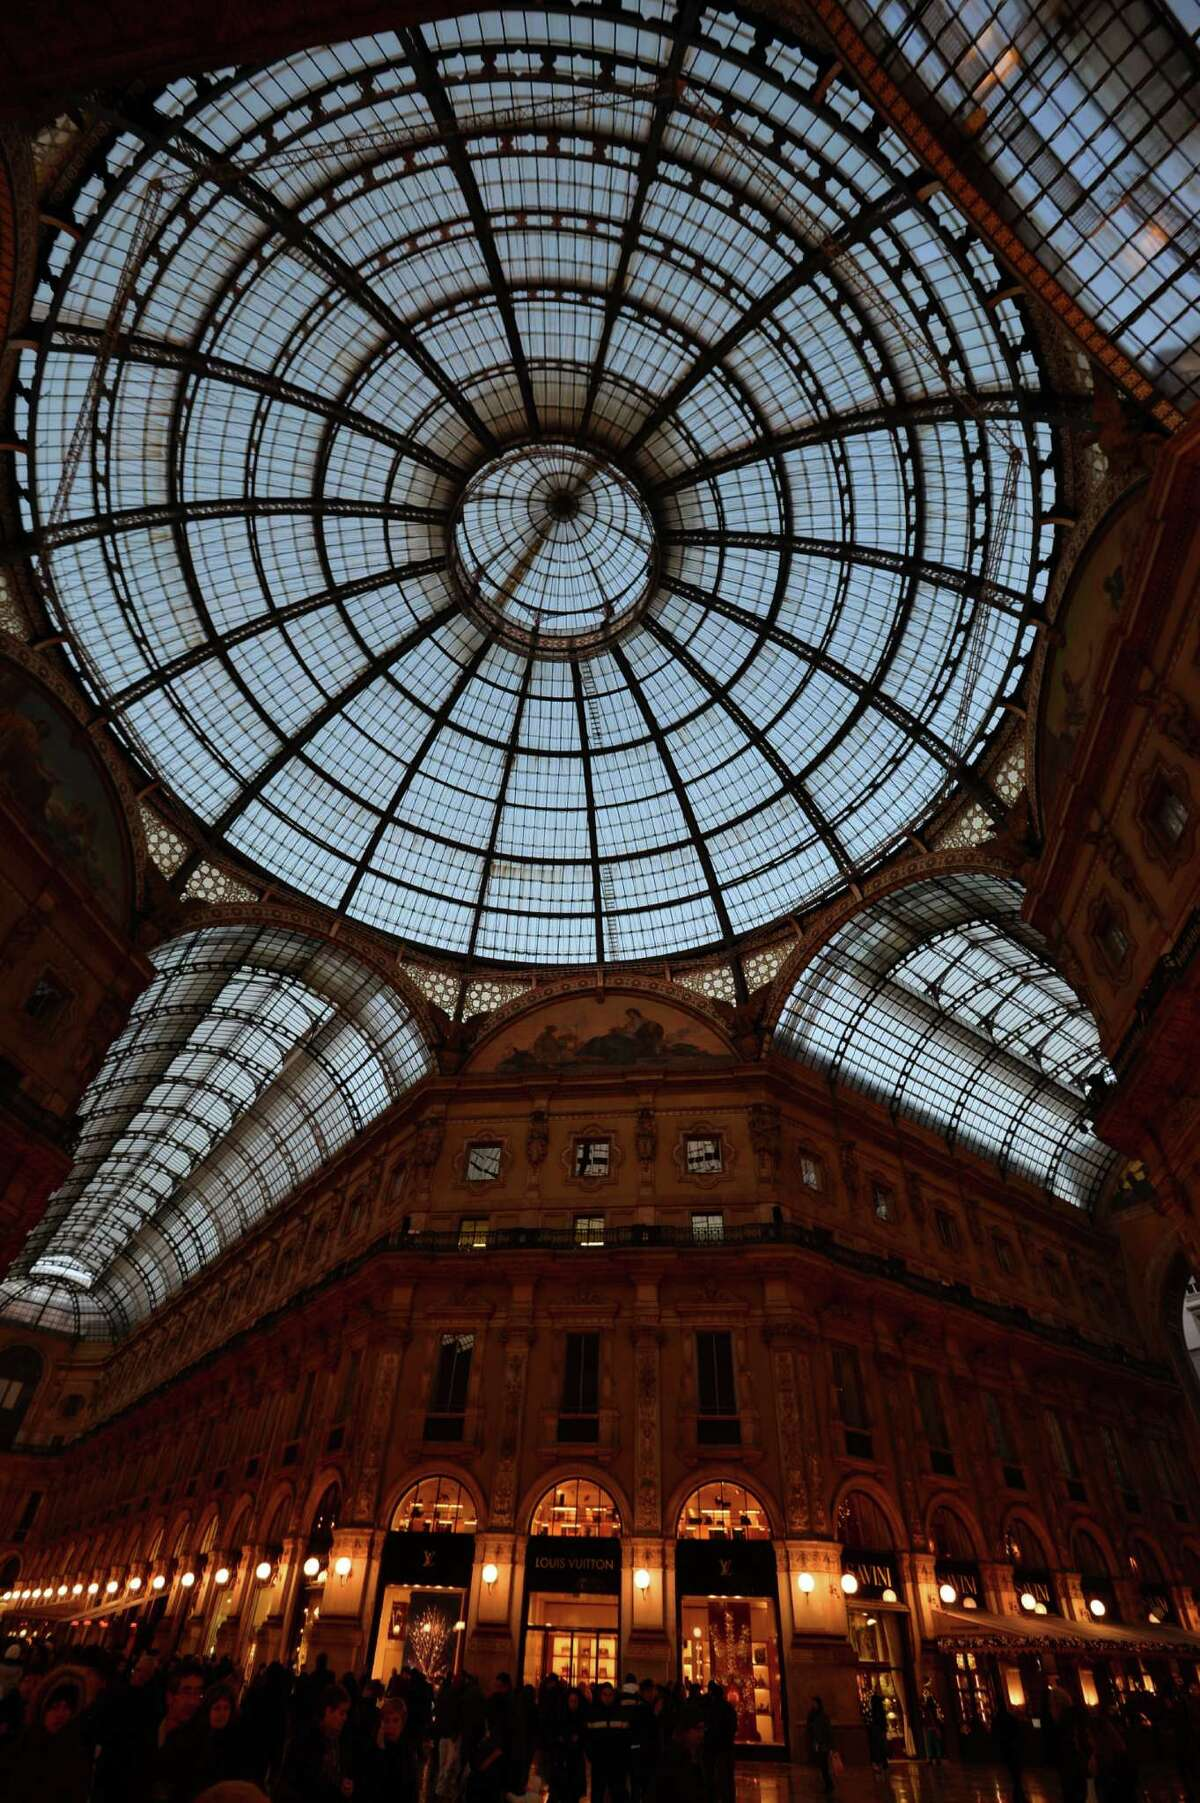 The Galleria's central space was modeled after the Galleria Vittorio Emanuele II in Milan, the oldest shopping mall in Italy.